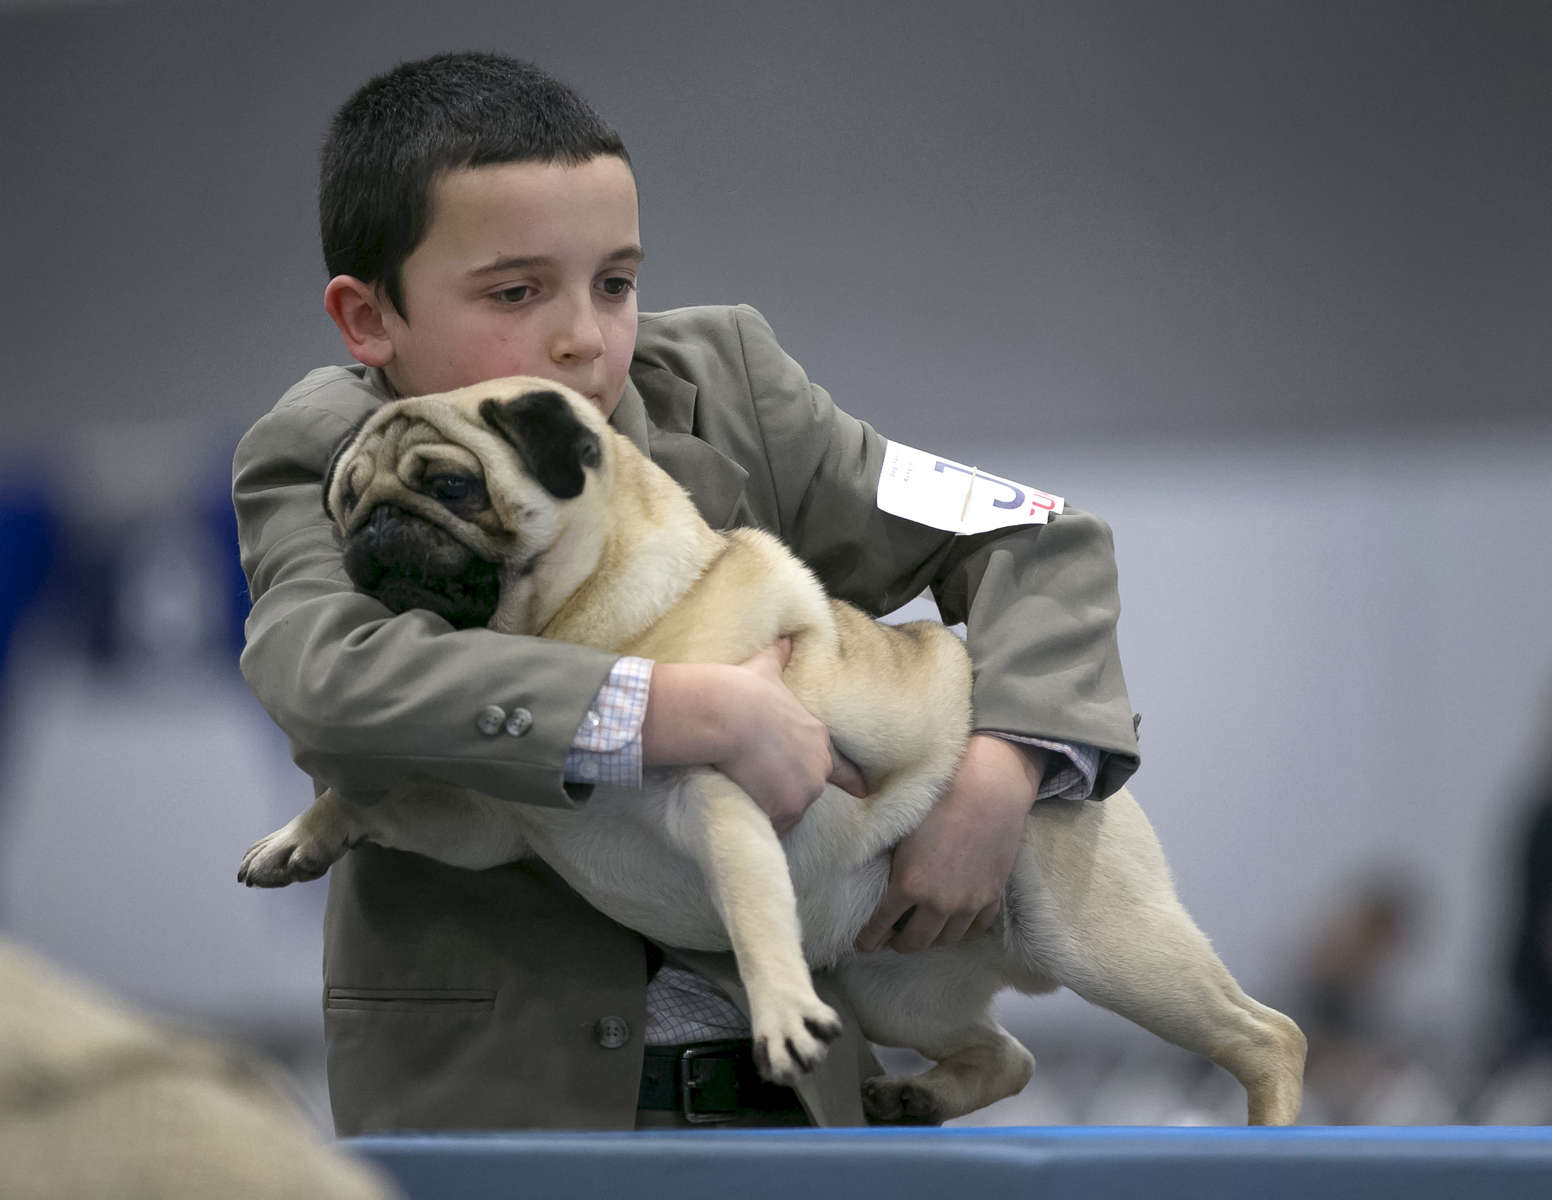 Competitor Matthew Mueller, 9, of La Center, WA, lifts Pug ''Gibs'', from a table as he shows the dog in the Rose City Classic Dog Show in Portland, Jan. 16, 2015 at the Portland Expo Center. The show runs through Sunday and features 175 breeds of dog, with about 3,000 dogs in the event. Kristyna Wentz-Graff / The Oregonian